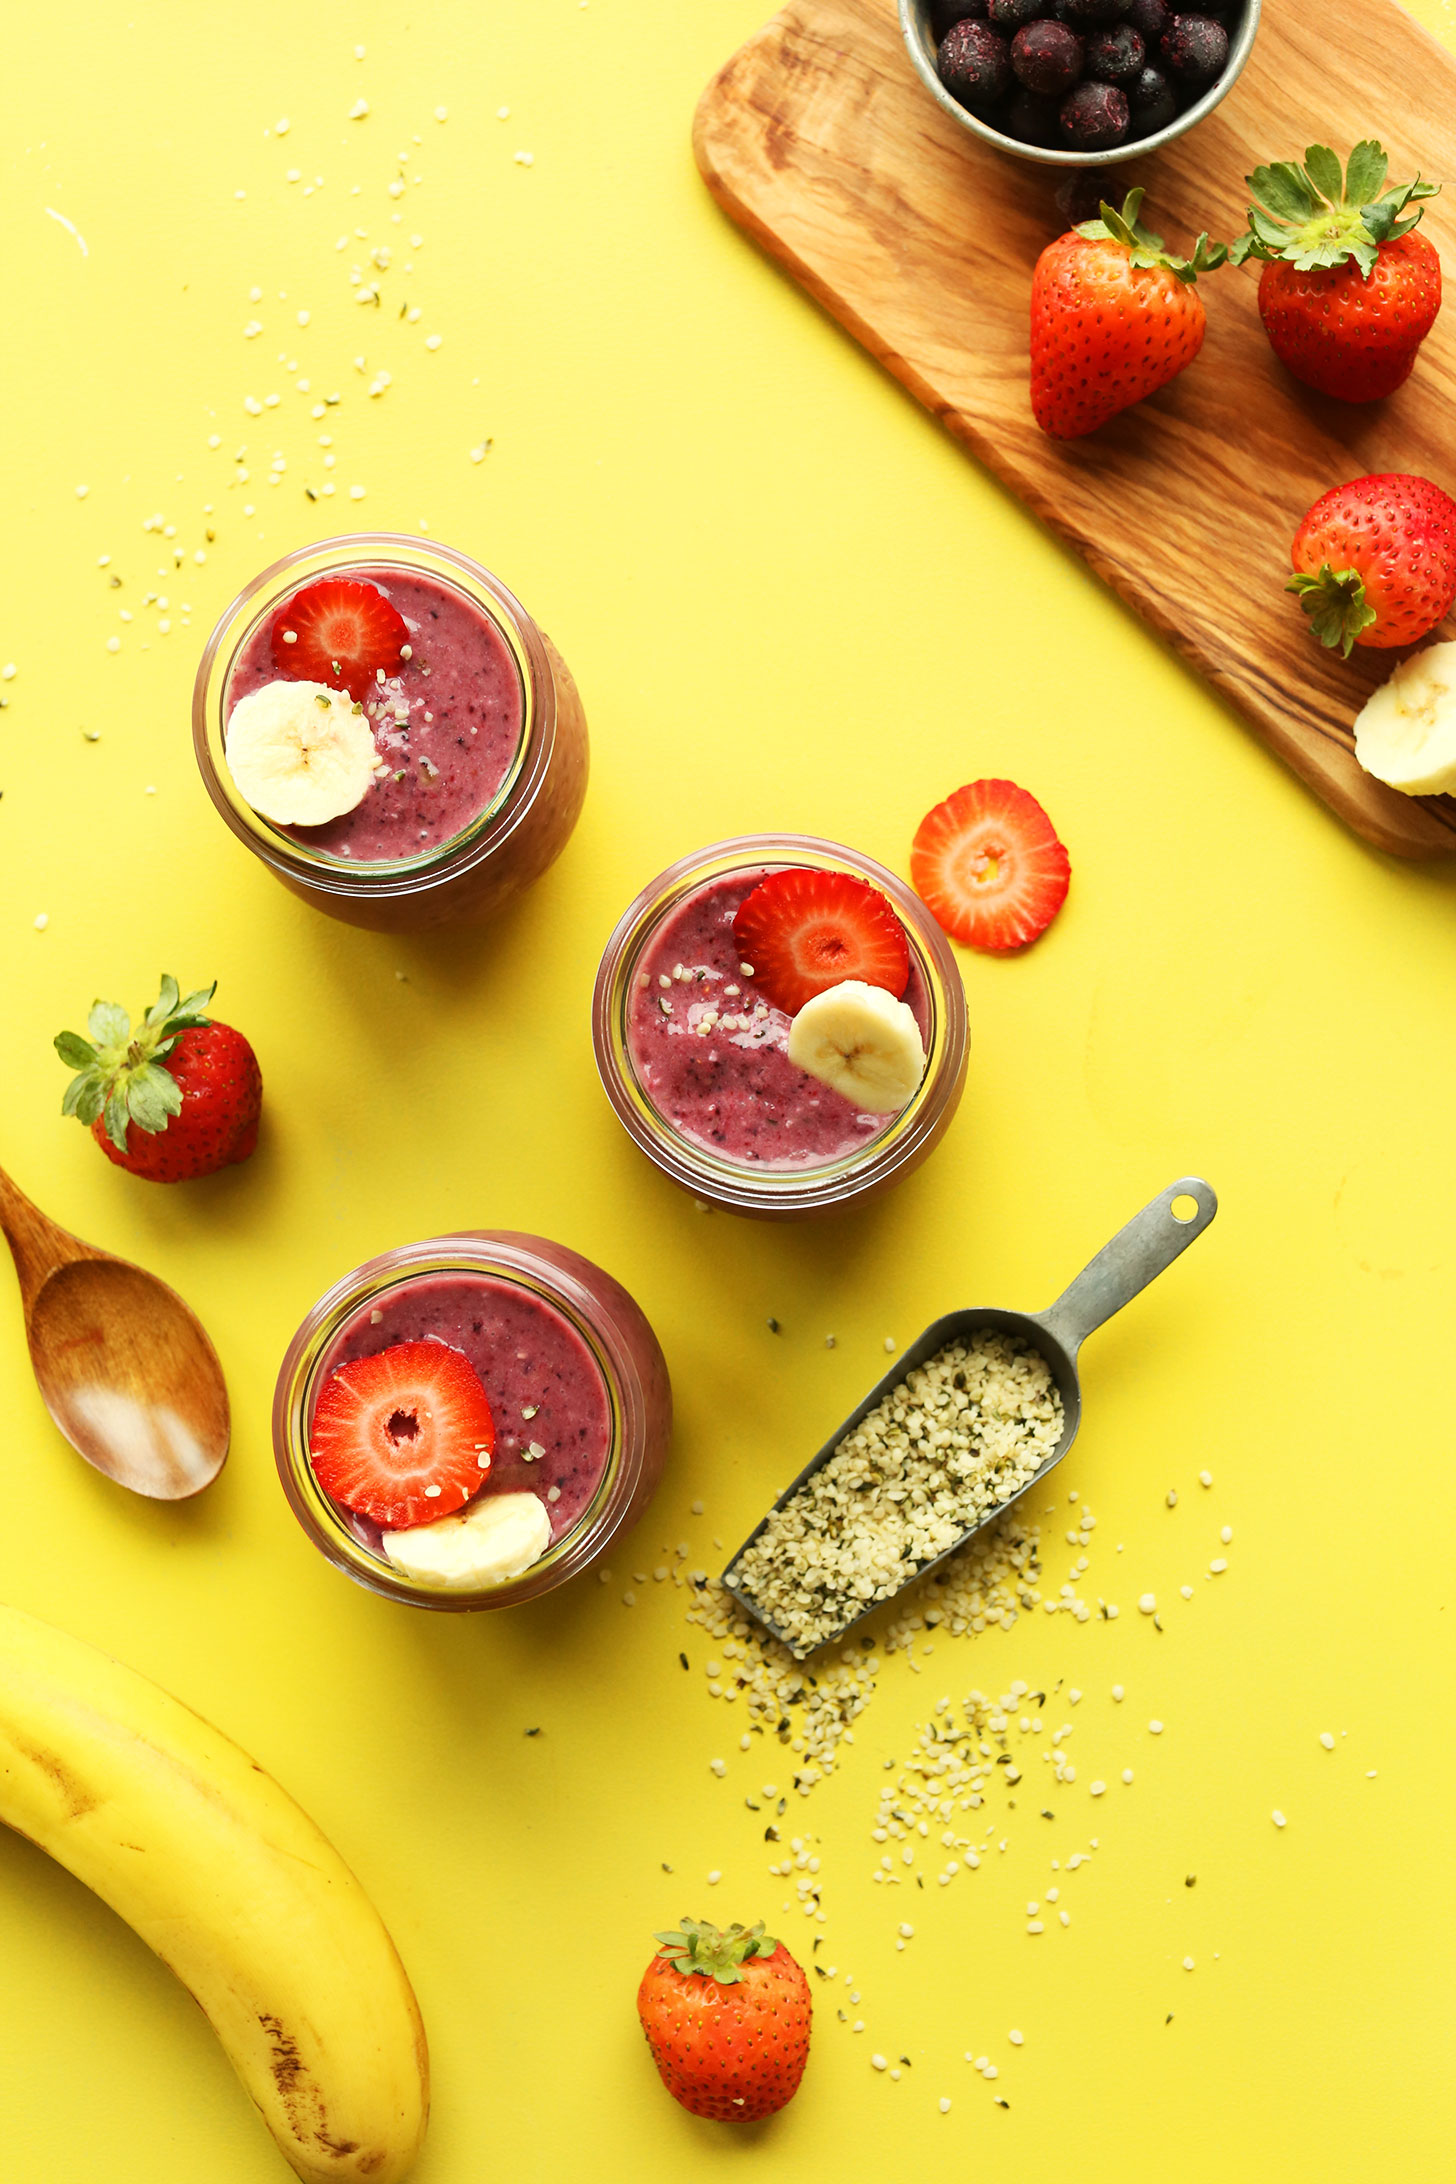 Jars of our Banana and Hempseed Berry Pudding recipe topped with fresh fruit